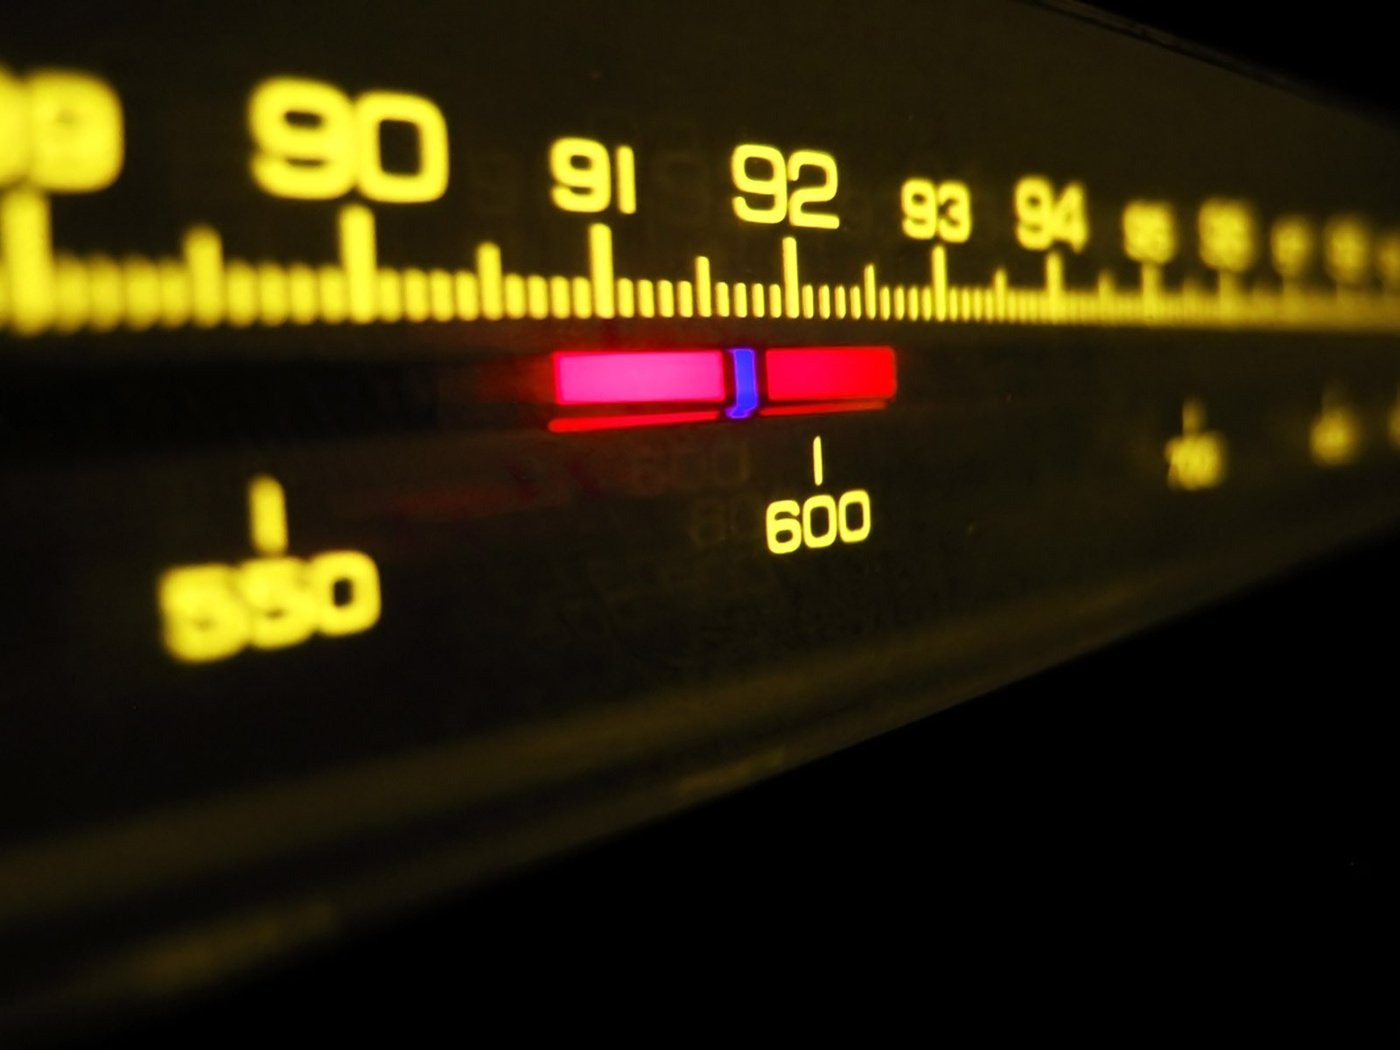 Russian radio stations to start broadcasting warnings of inappropriate song content.